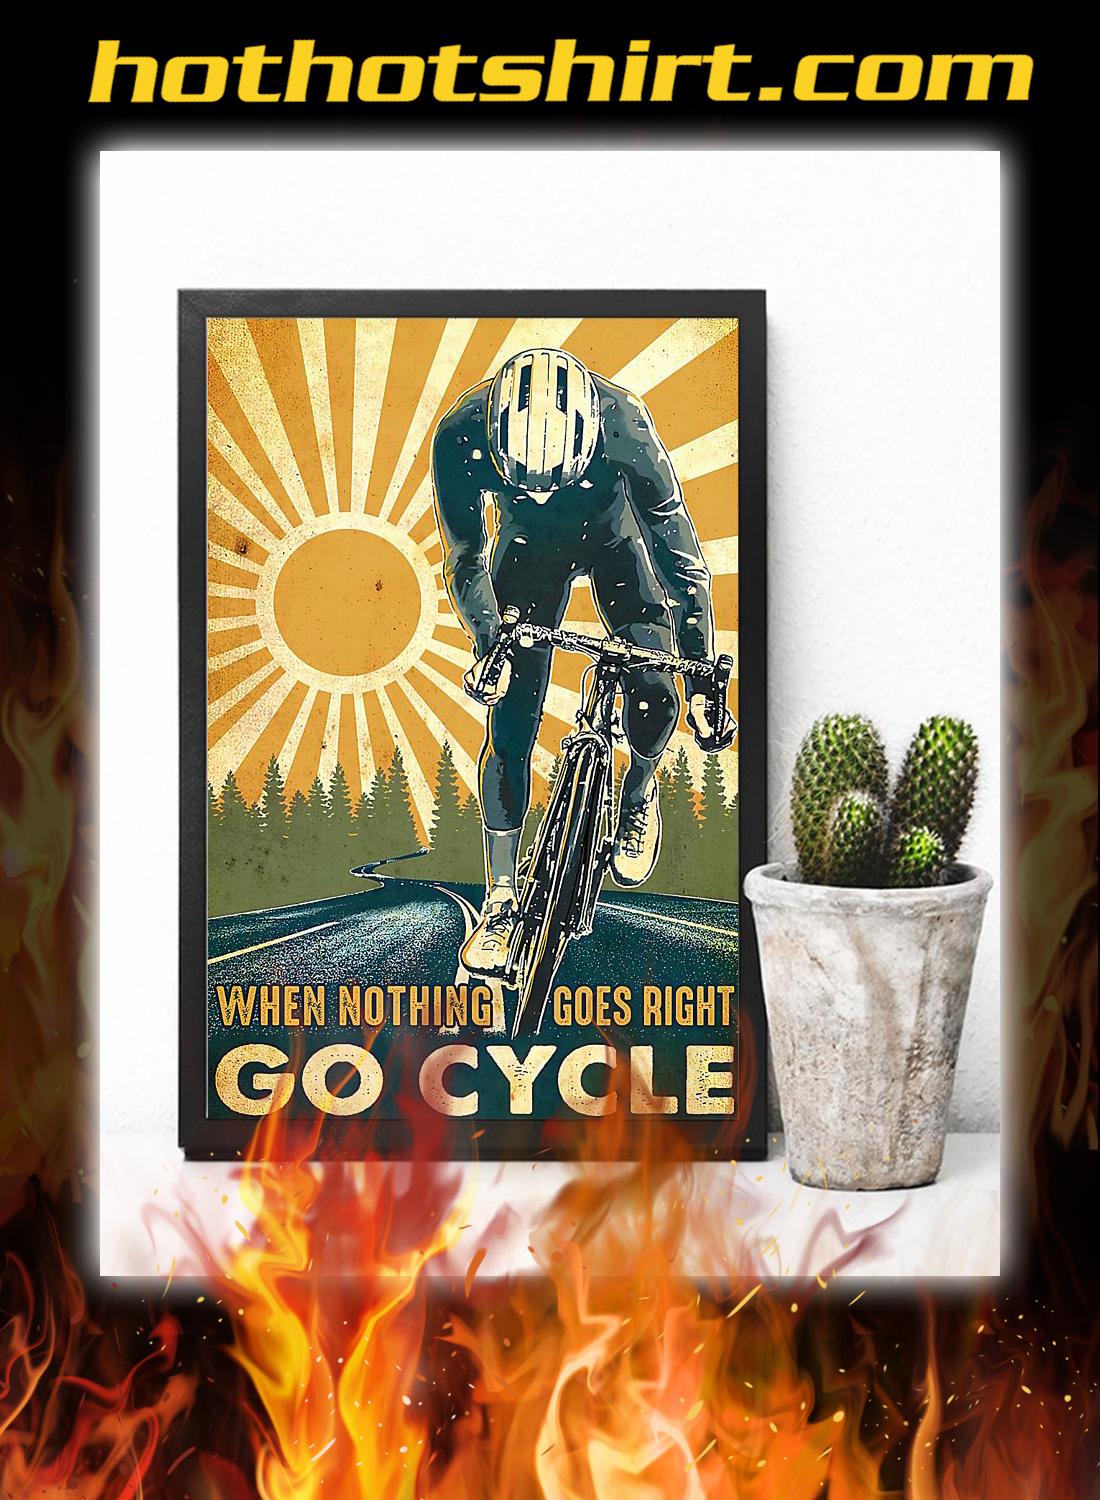 When nothing goes right go cycle poster 3